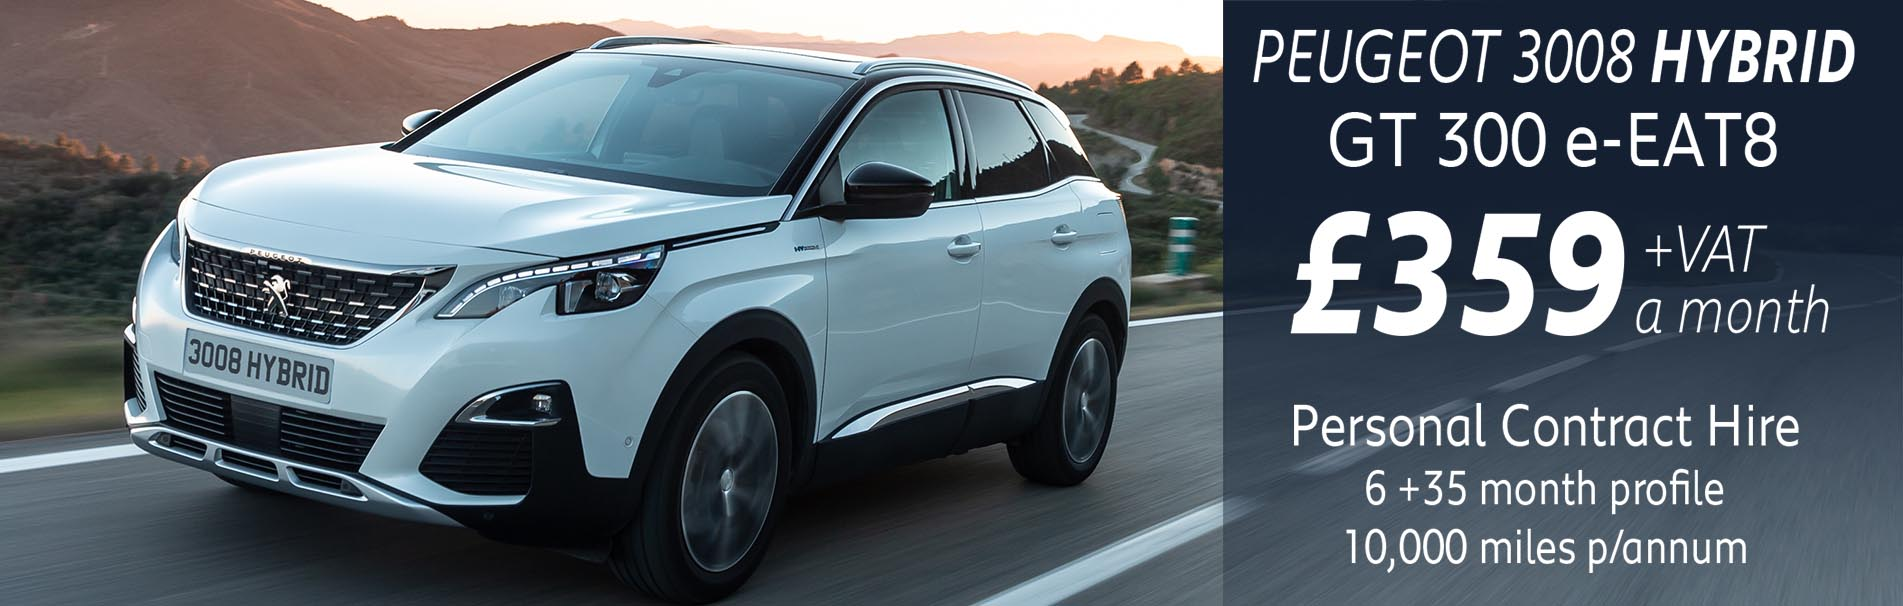 peugeot-3008-hybrid-gt-300-e-eat8-october-deal-sli